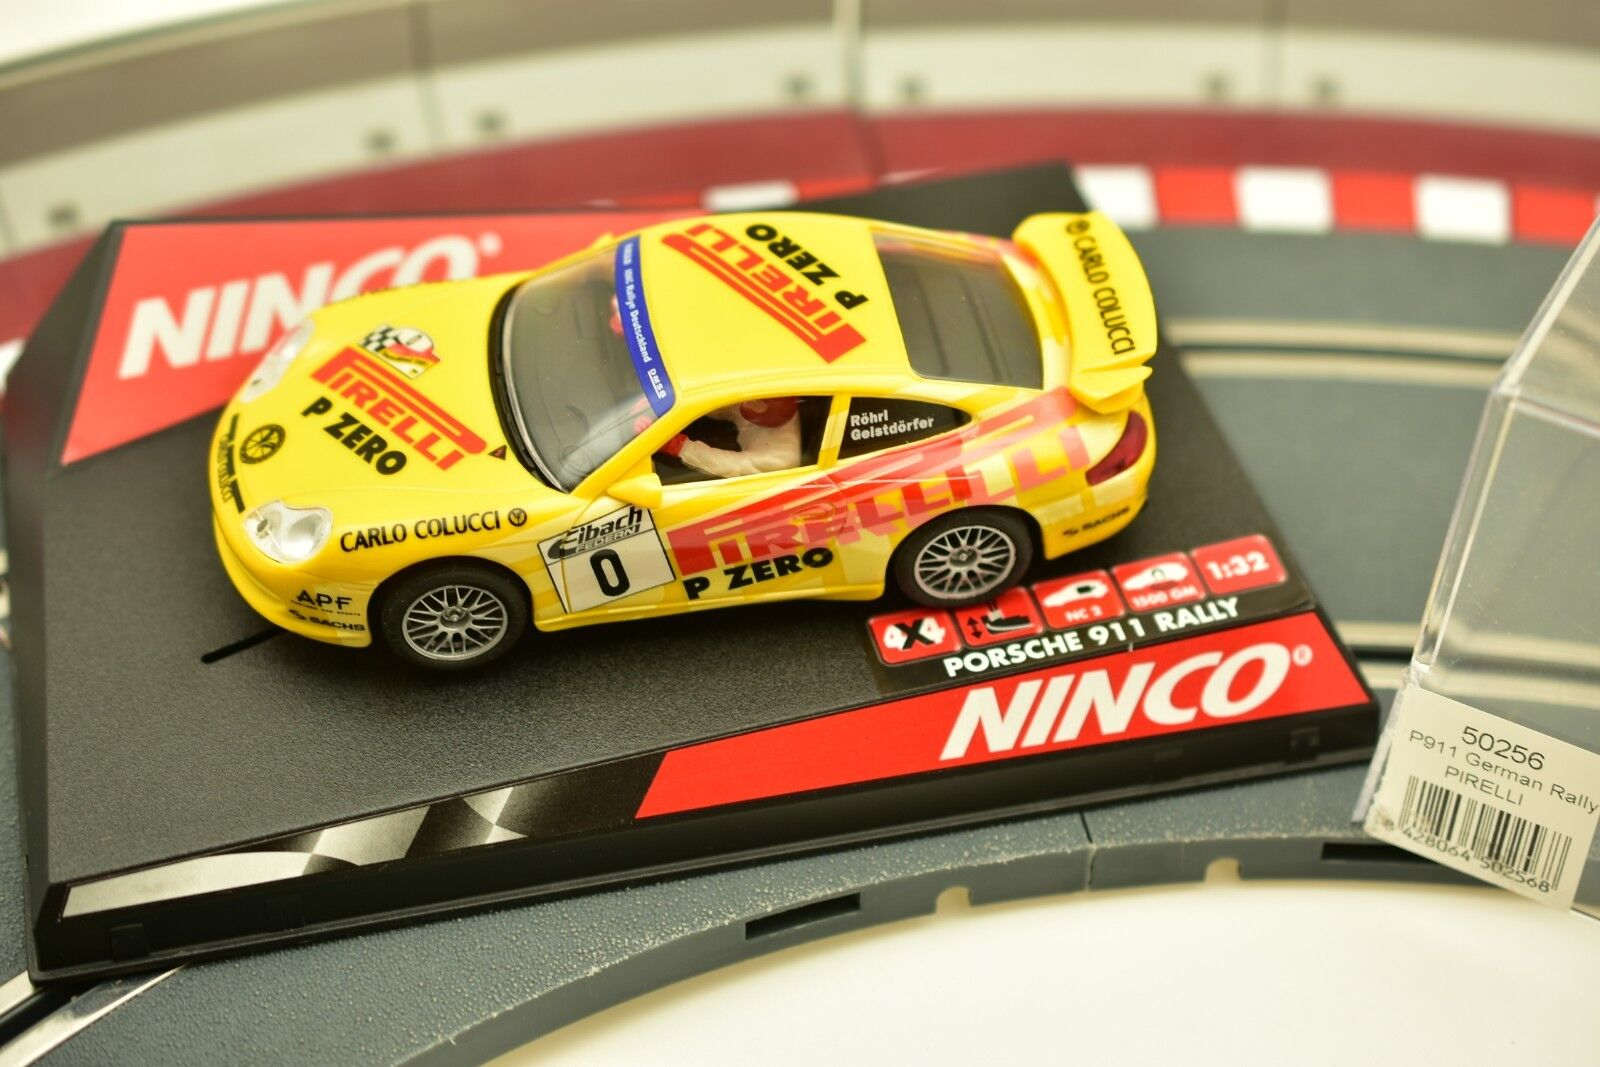 NINCO 1 32 SLOT CARS 50256 PORSCHE 911 GERMAN RALLY  PIRELLI  YELLOW